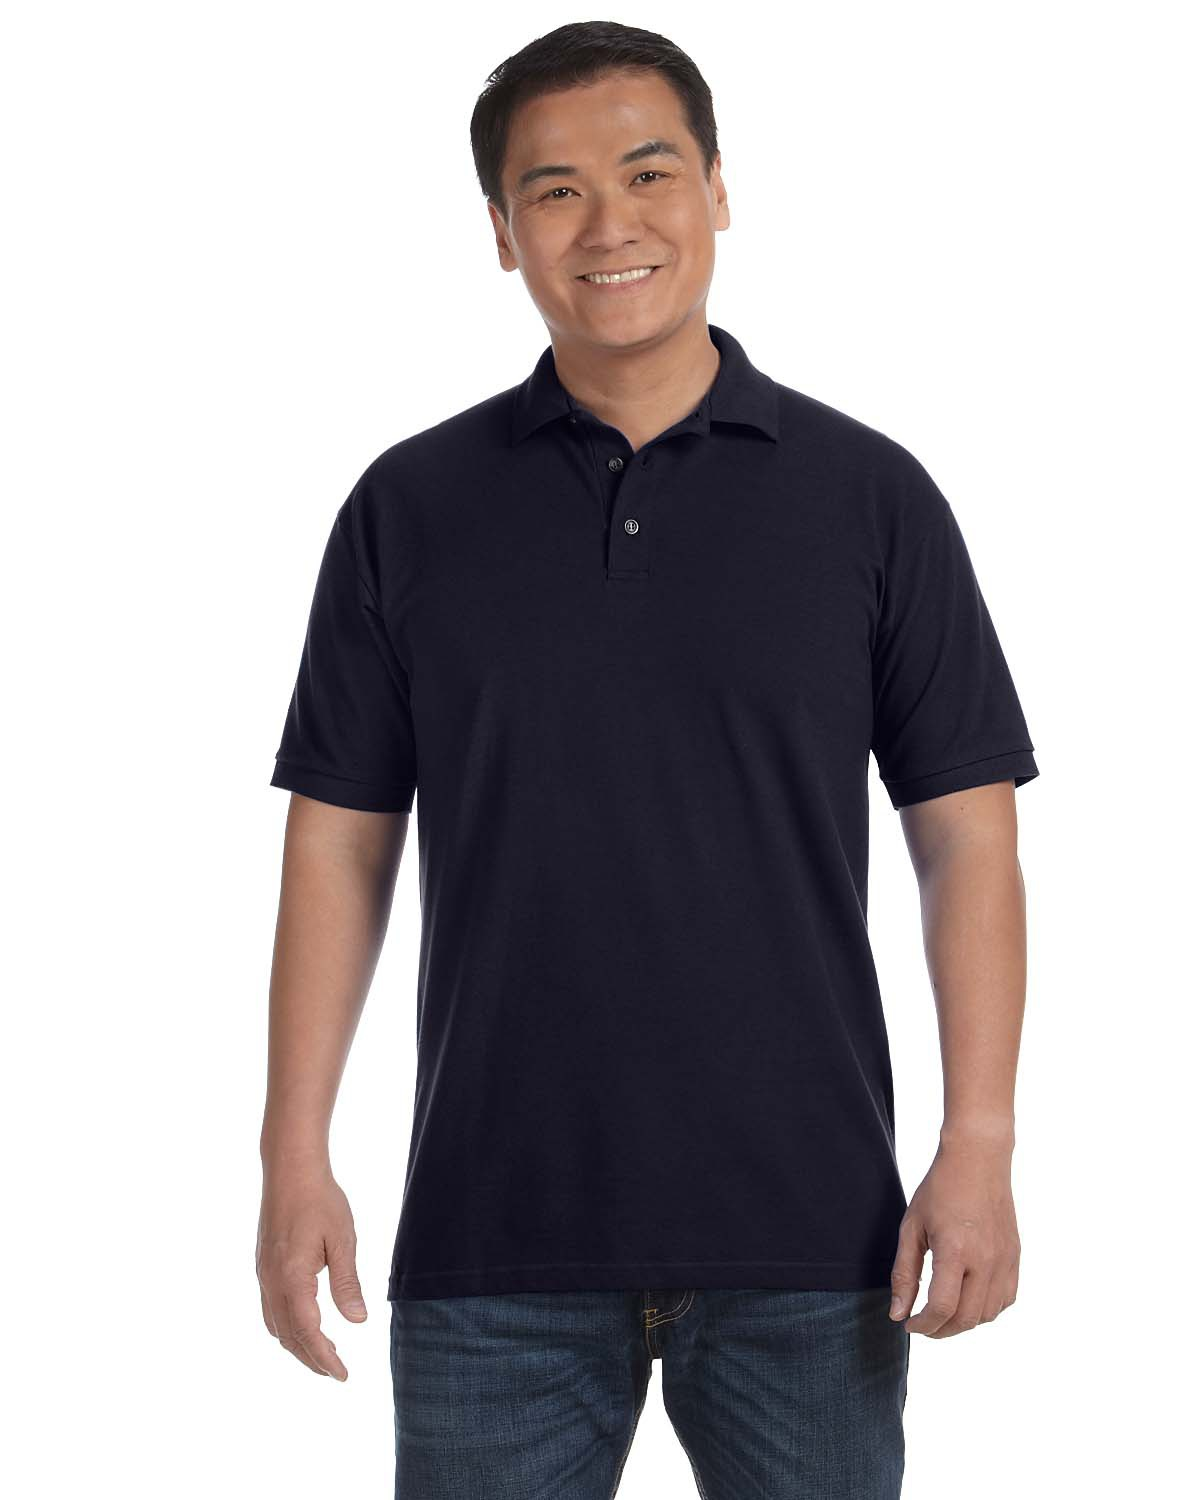 Anvil 6020 Ringspun Cotton Pique Polo